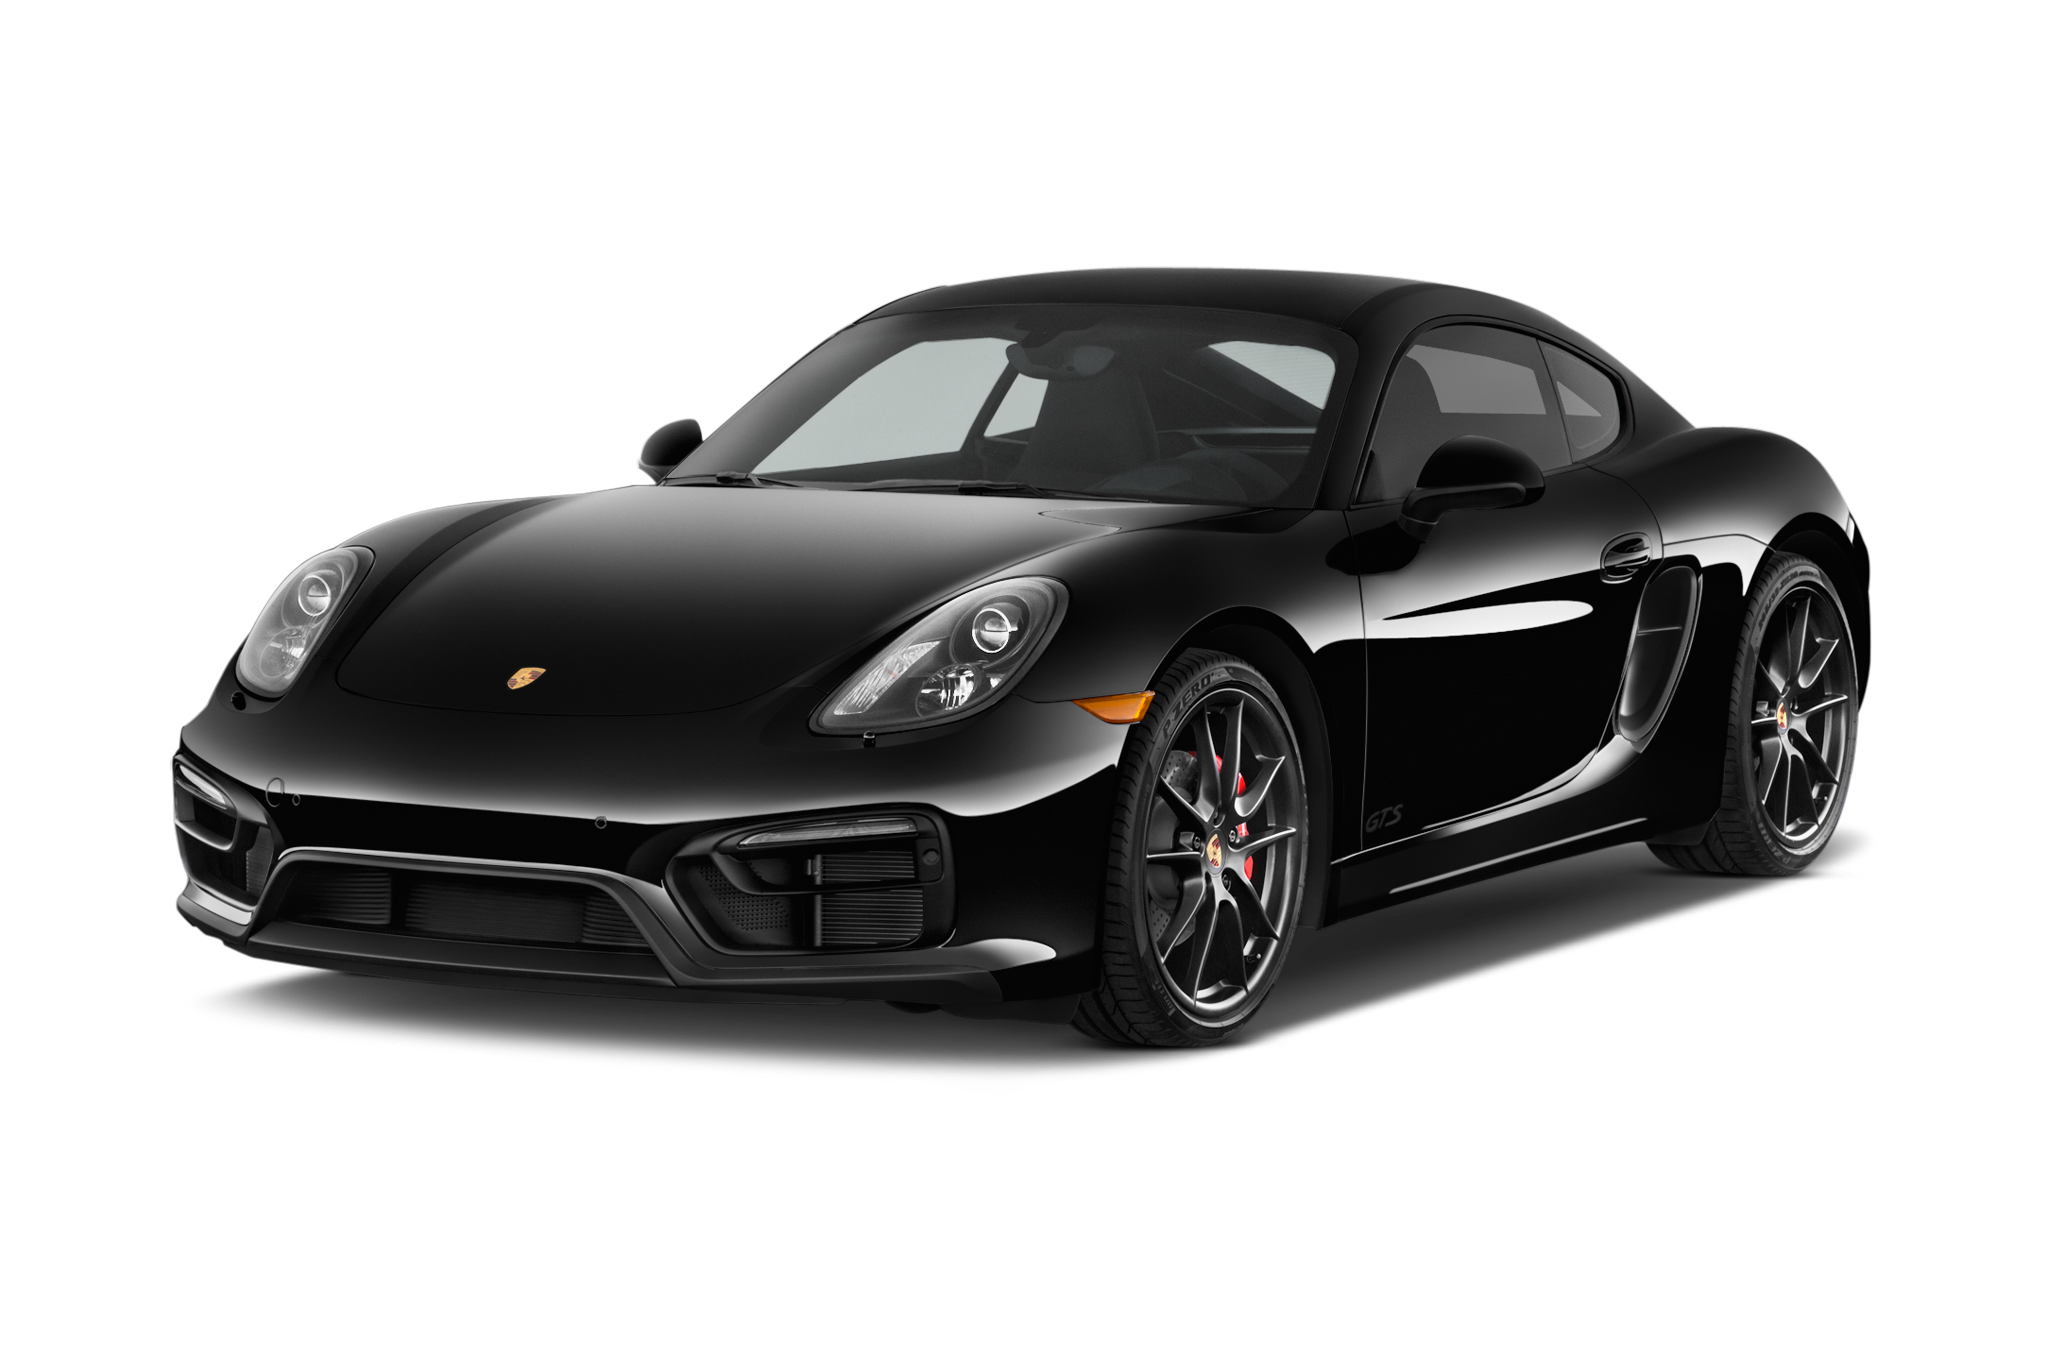 porsche will celebrate the 70th anniversary of its first sports car in june 8 2018 shiny bull. Black Bedroom Furniture Sets. Home Design Ideas